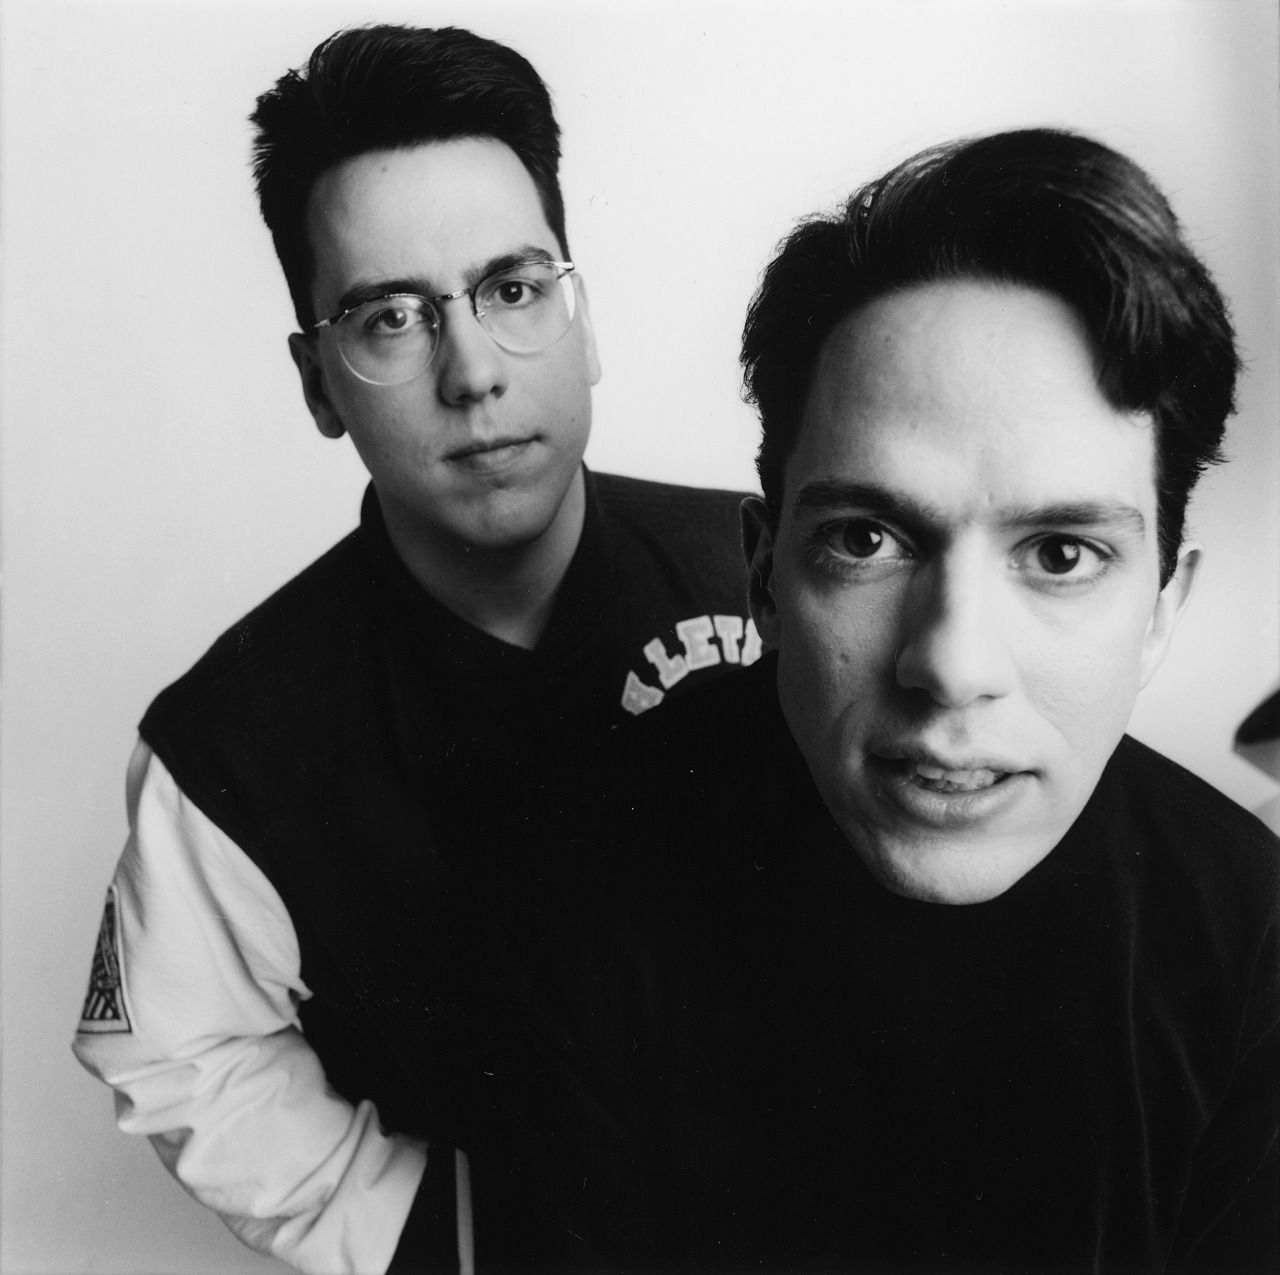 They Might Be Giants | Band photos, Musician